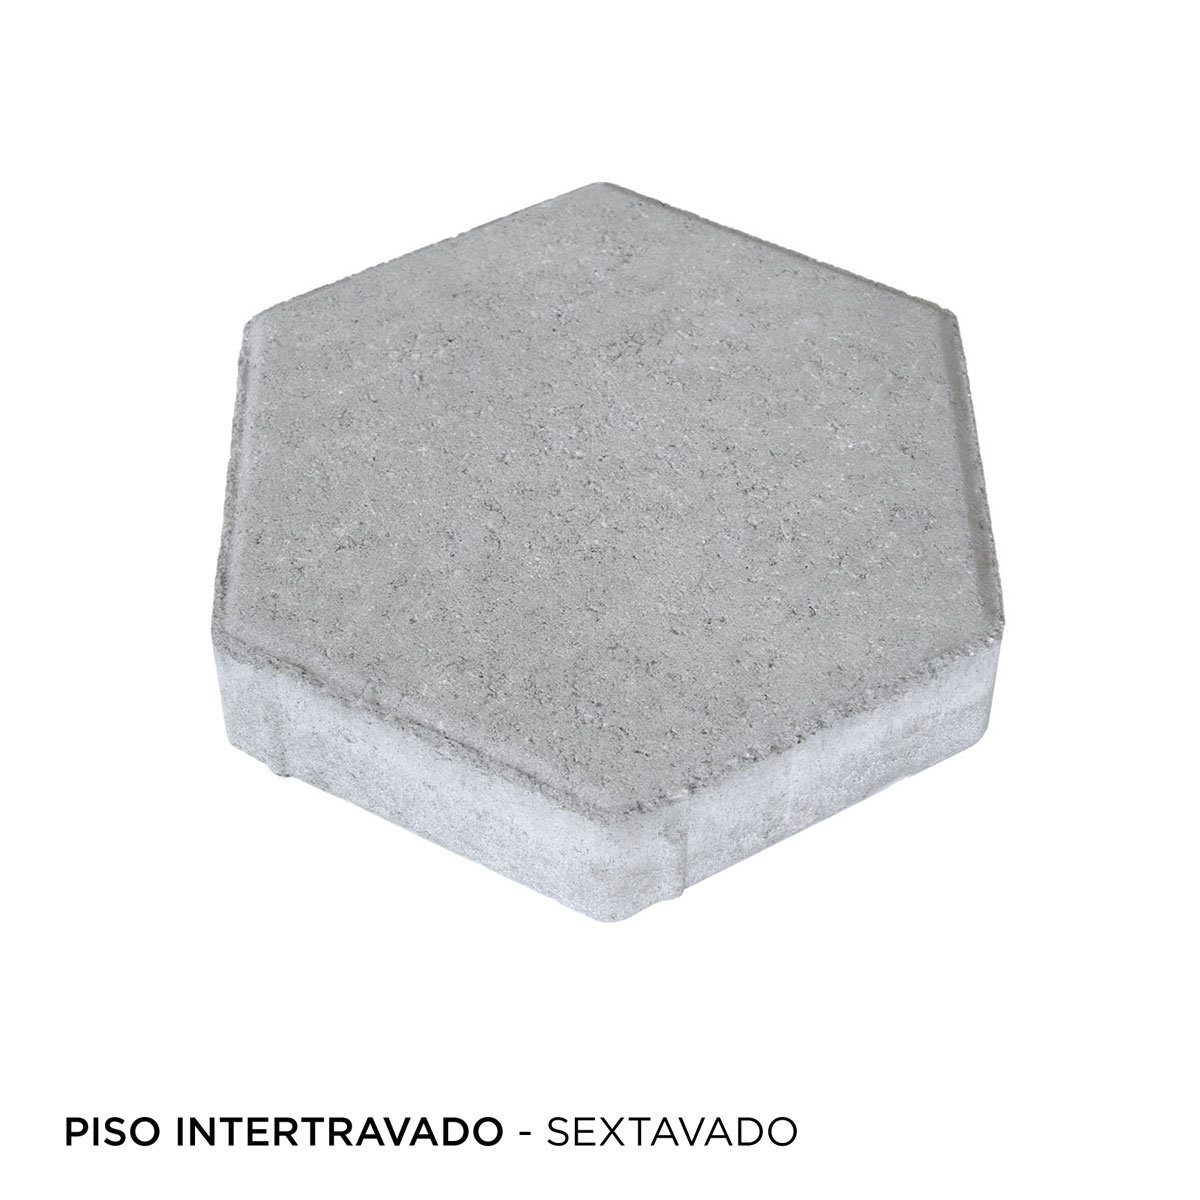 intertravado sextavado